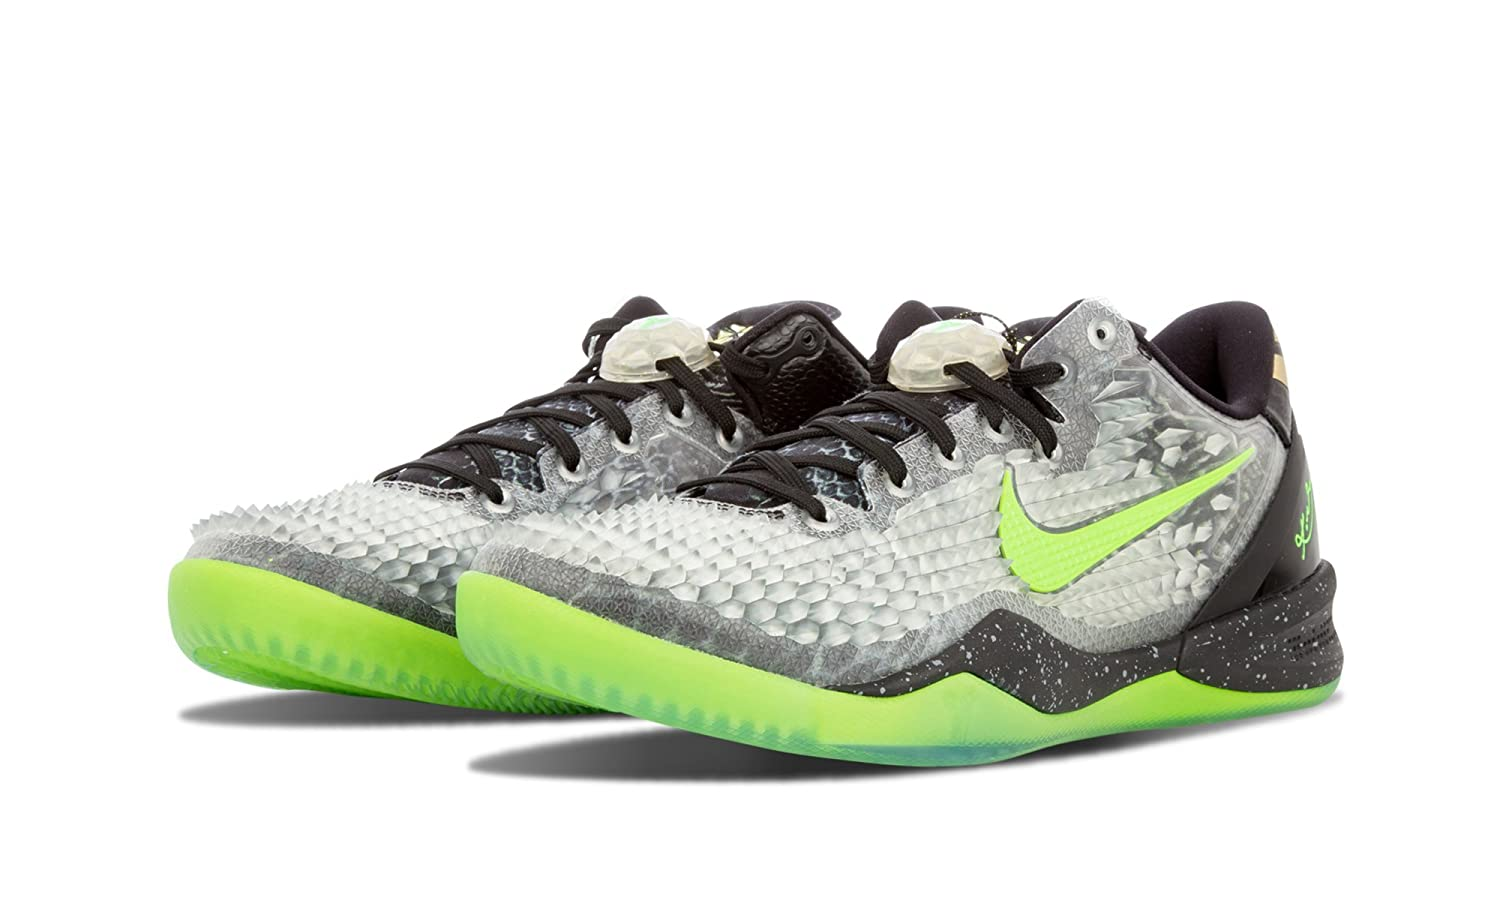 Amazon.com | Nike Mens Kobe 8 System SS "|1500|900|?|4c707a655accd40a19bd4d6109646bd2|False|UNLIKELY|0.34891945123672485